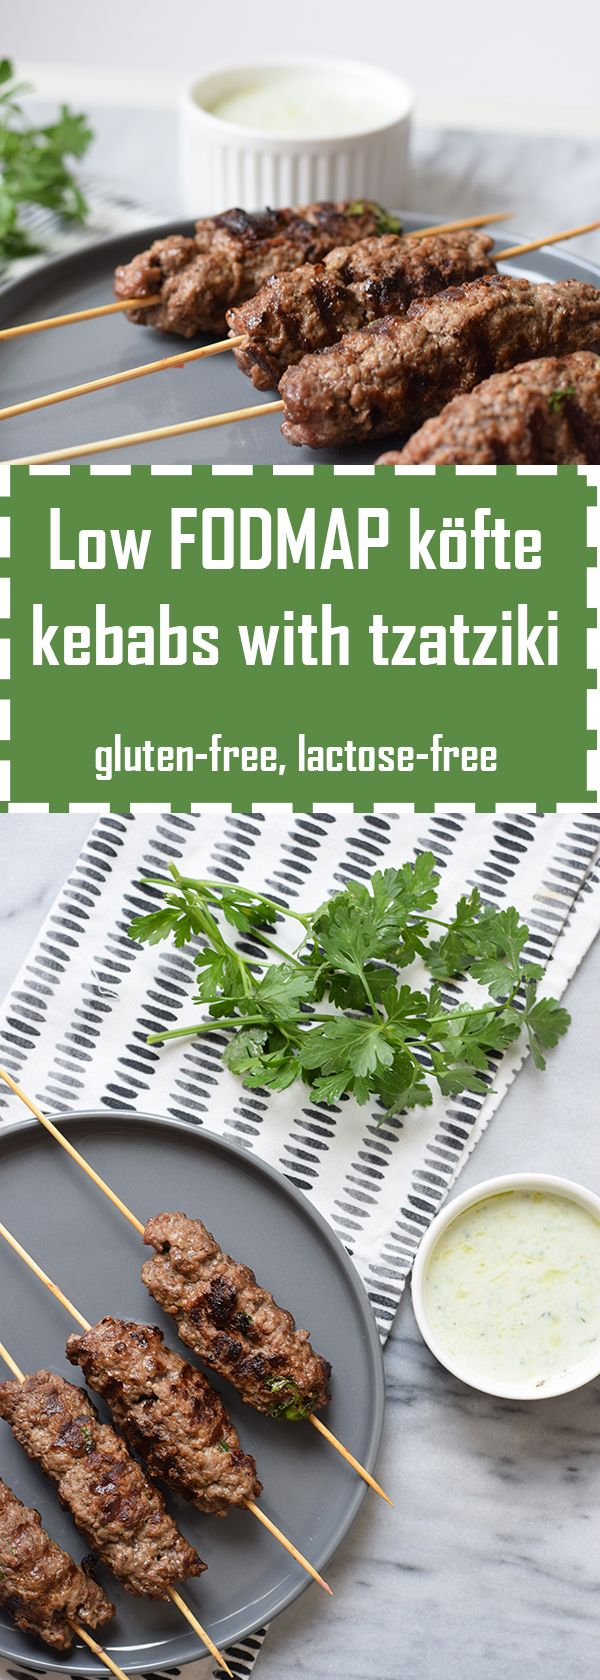 Delicious low FODMAP köfte kebabs with homemade tzatziki. Gluten-free and lactose-free.